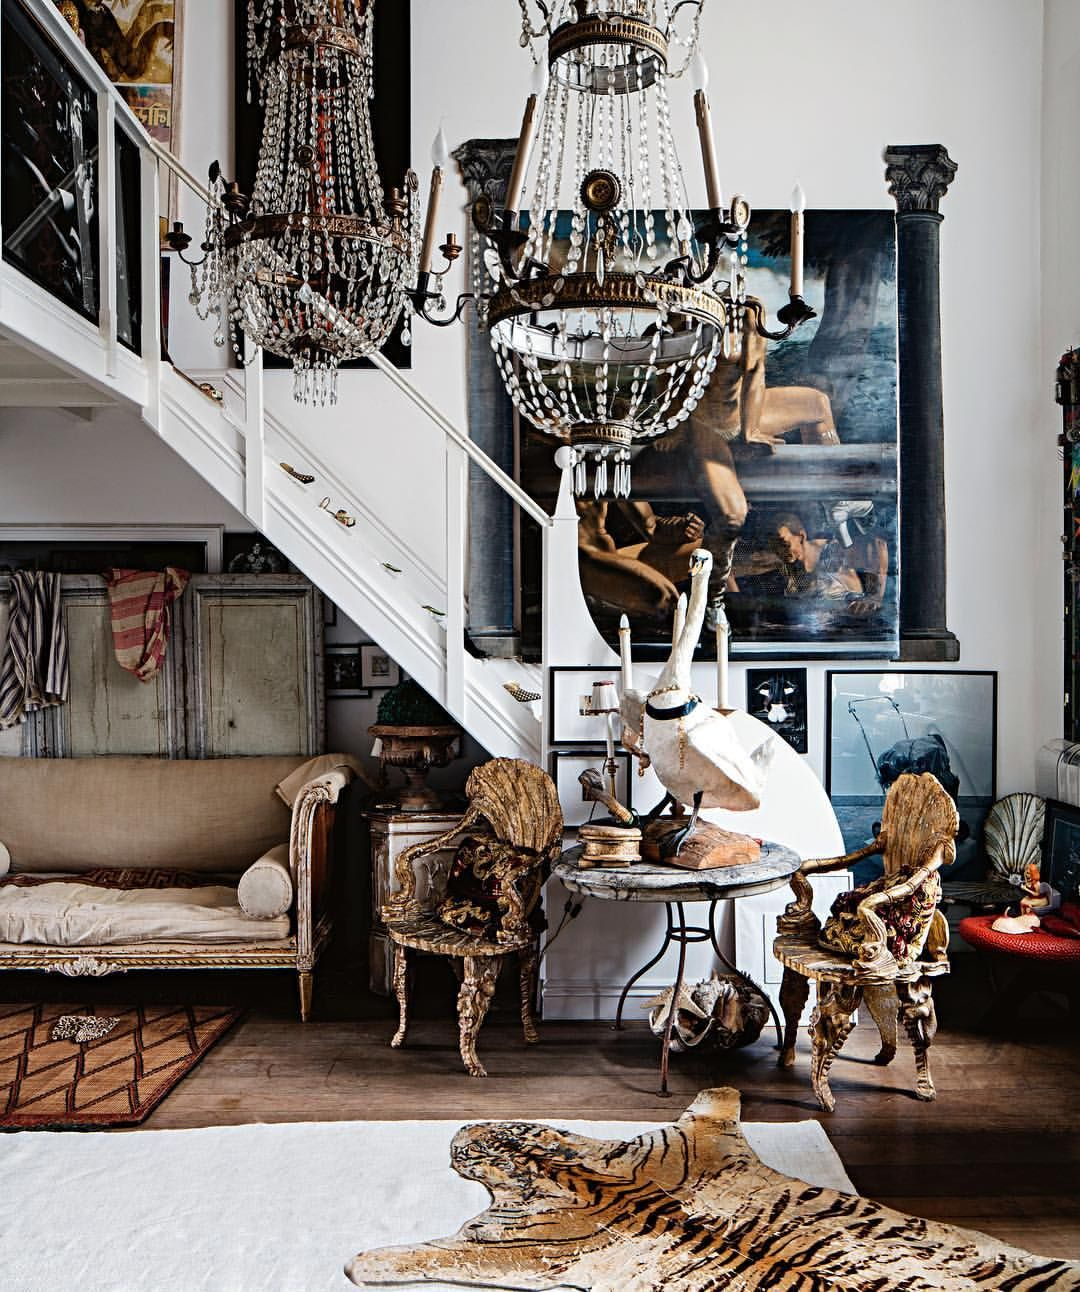 20 Eclectic Interior Design Ideas For Your Best Home Eclectic Interiordesign Ideas Homedeco Eclectic Interior Design Eclectic Interior Home Decor Styles